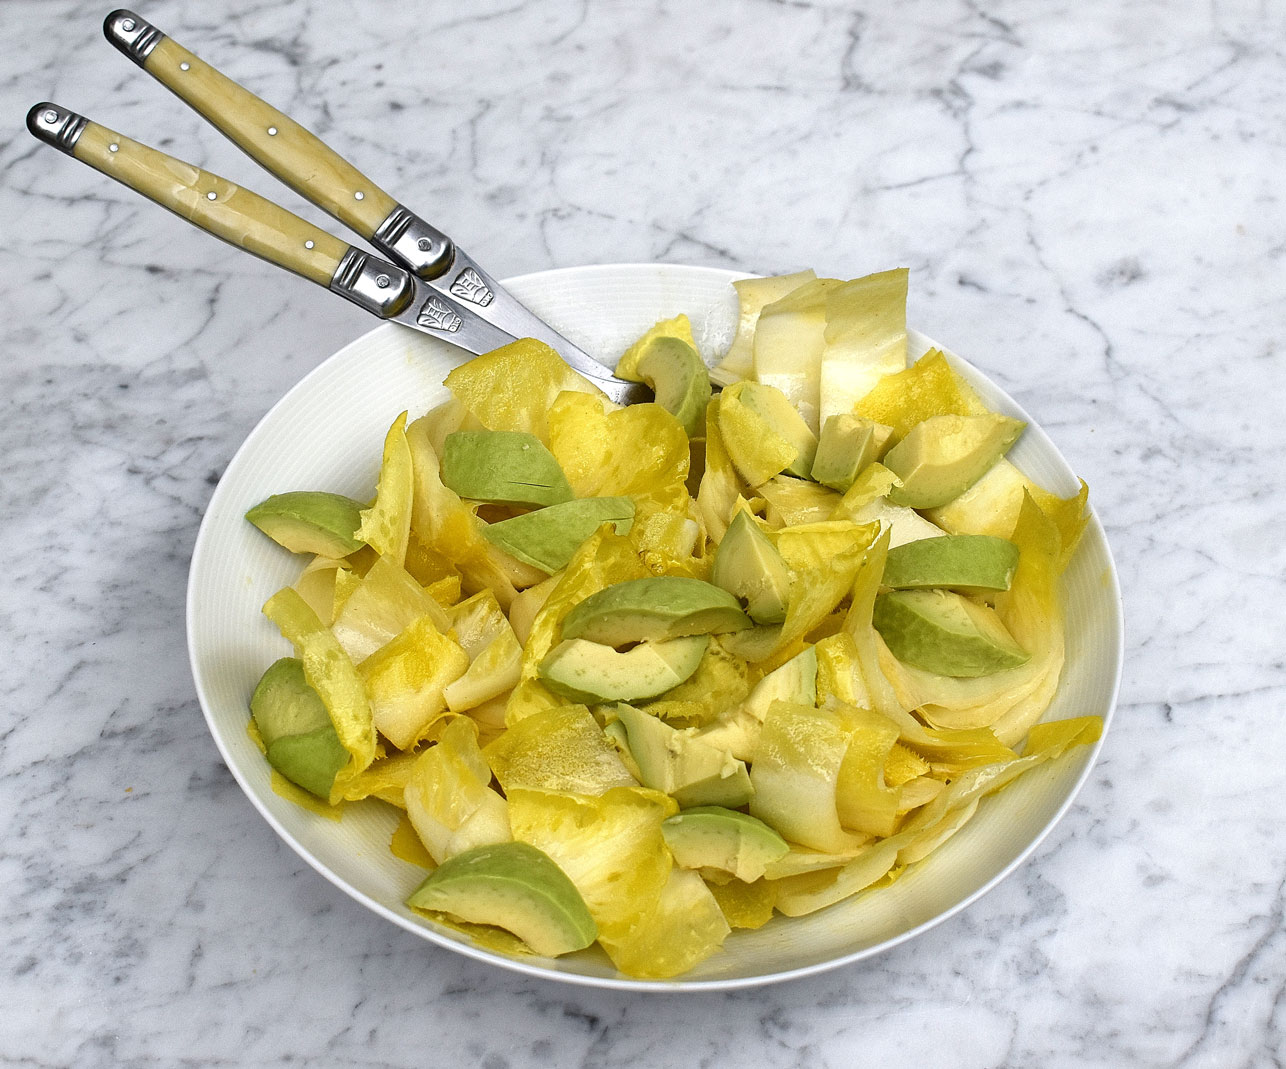 Endive (chicory) and avocado salad